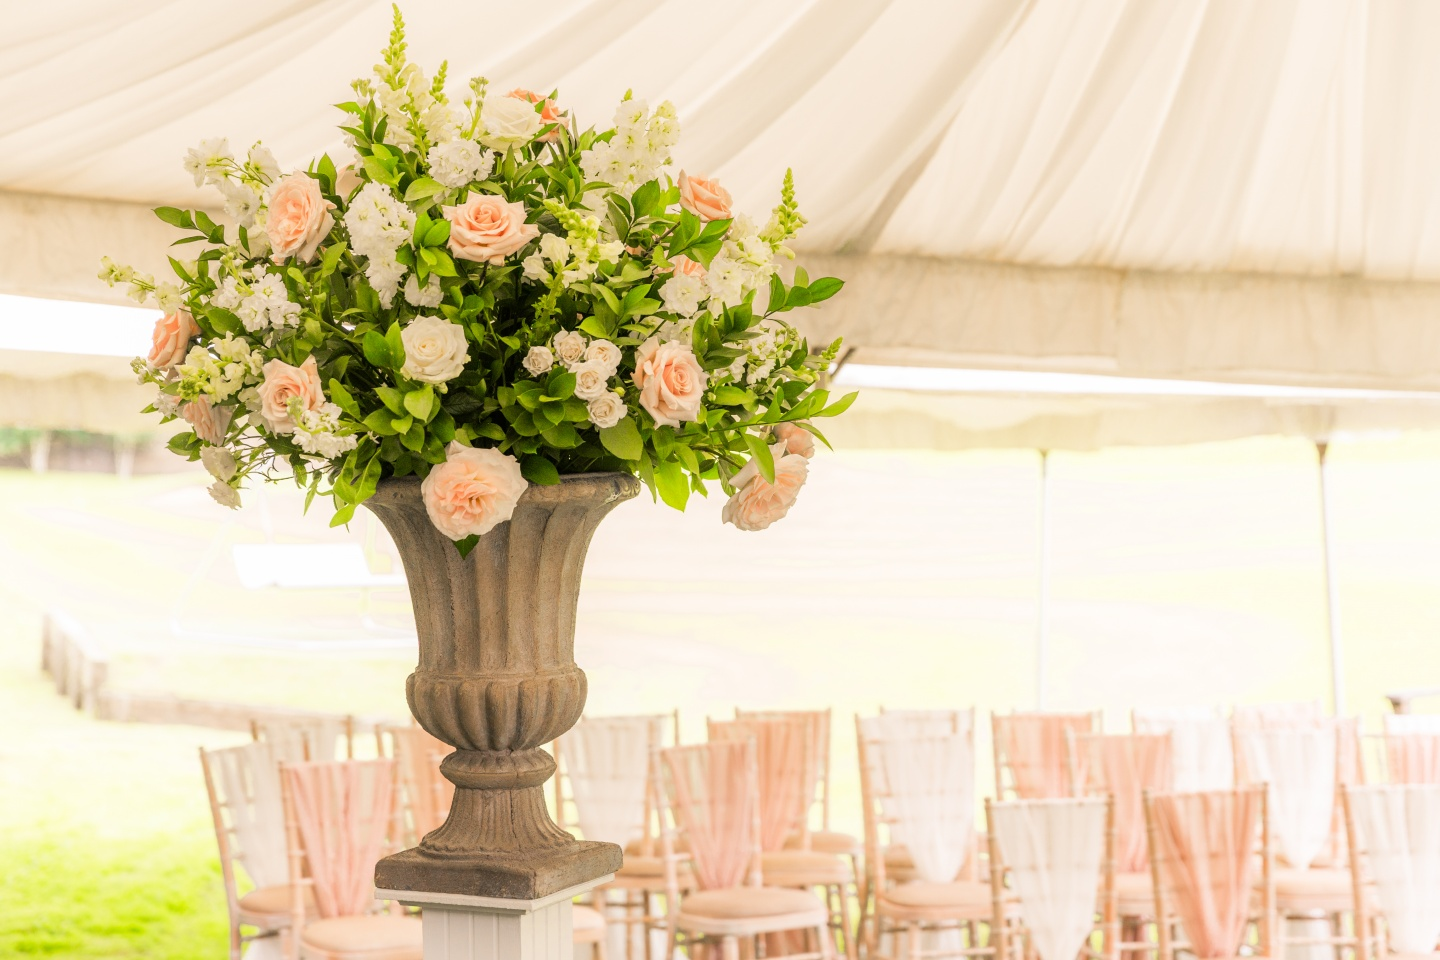 Stunning wedding flowers for the ceremony in the Cotswolds